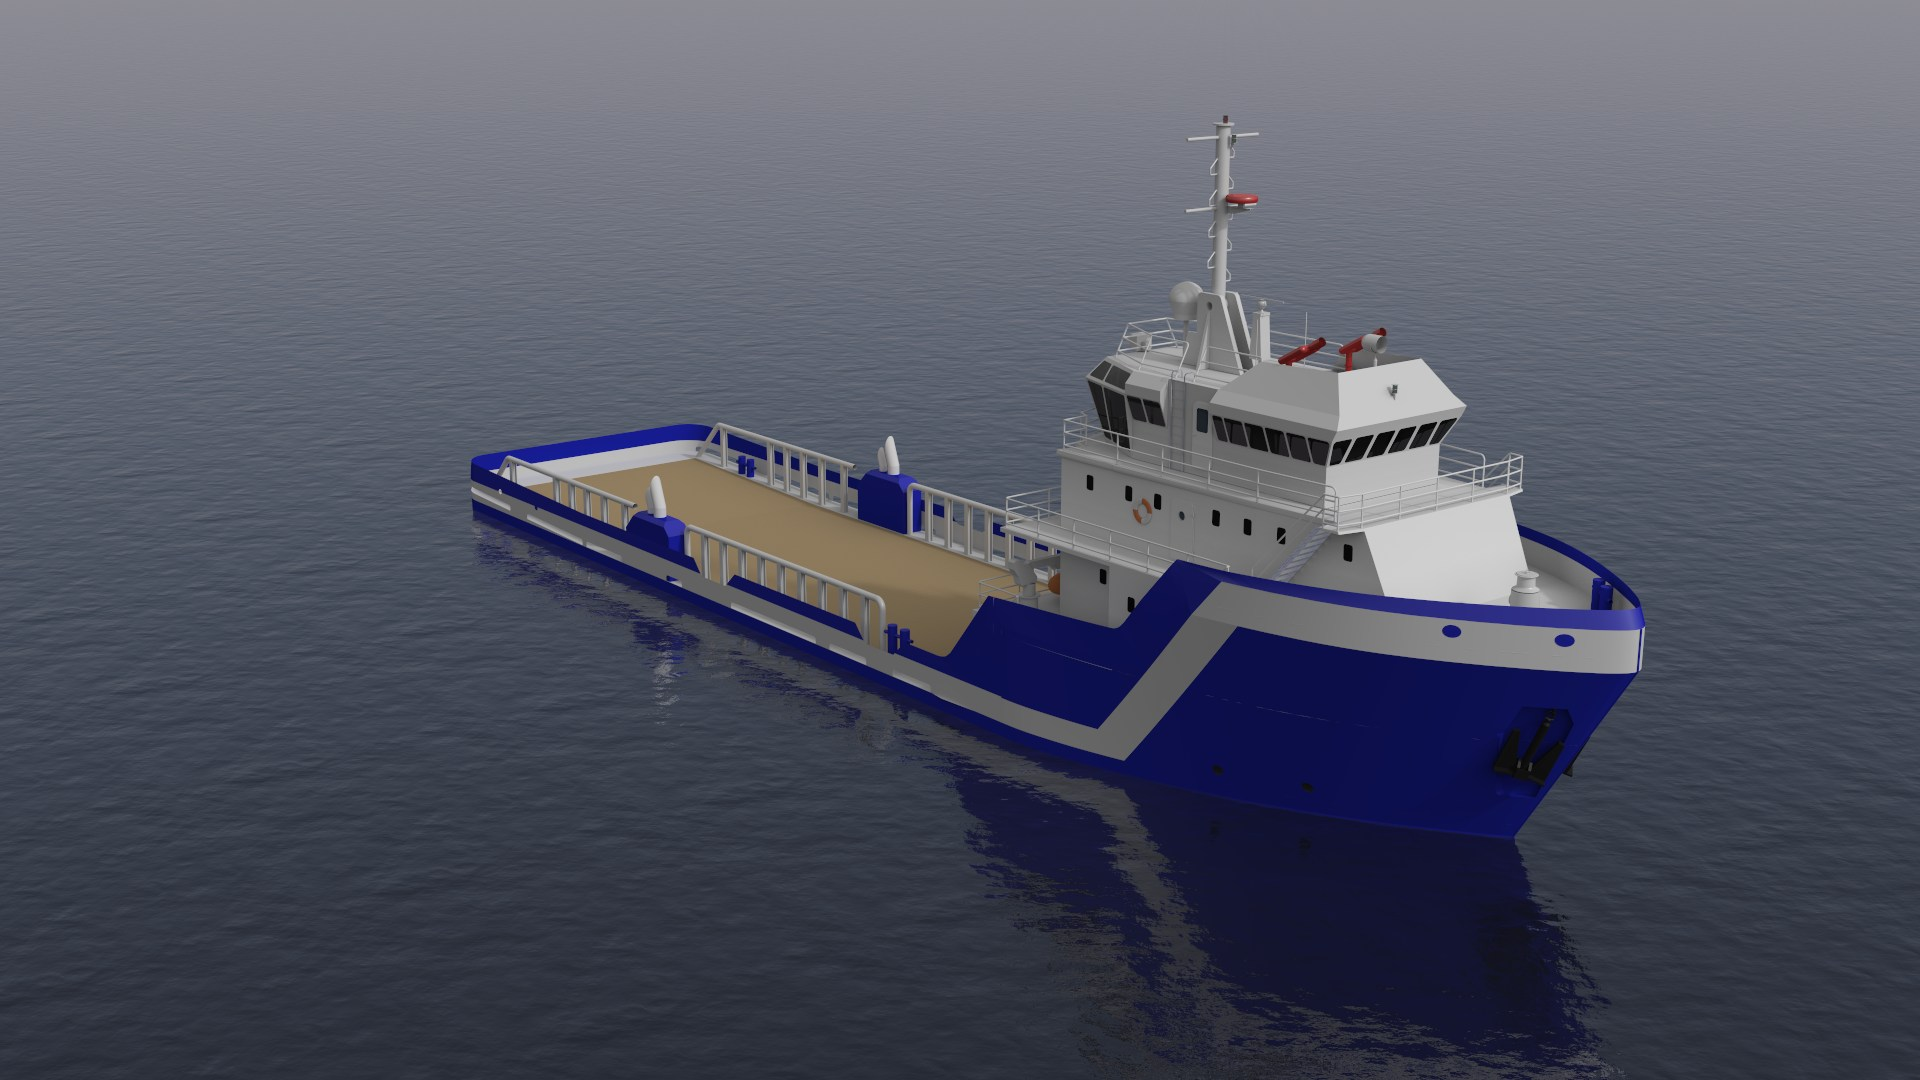 175' Offshore Support Vessel - C  FLY MARINE SERVICES